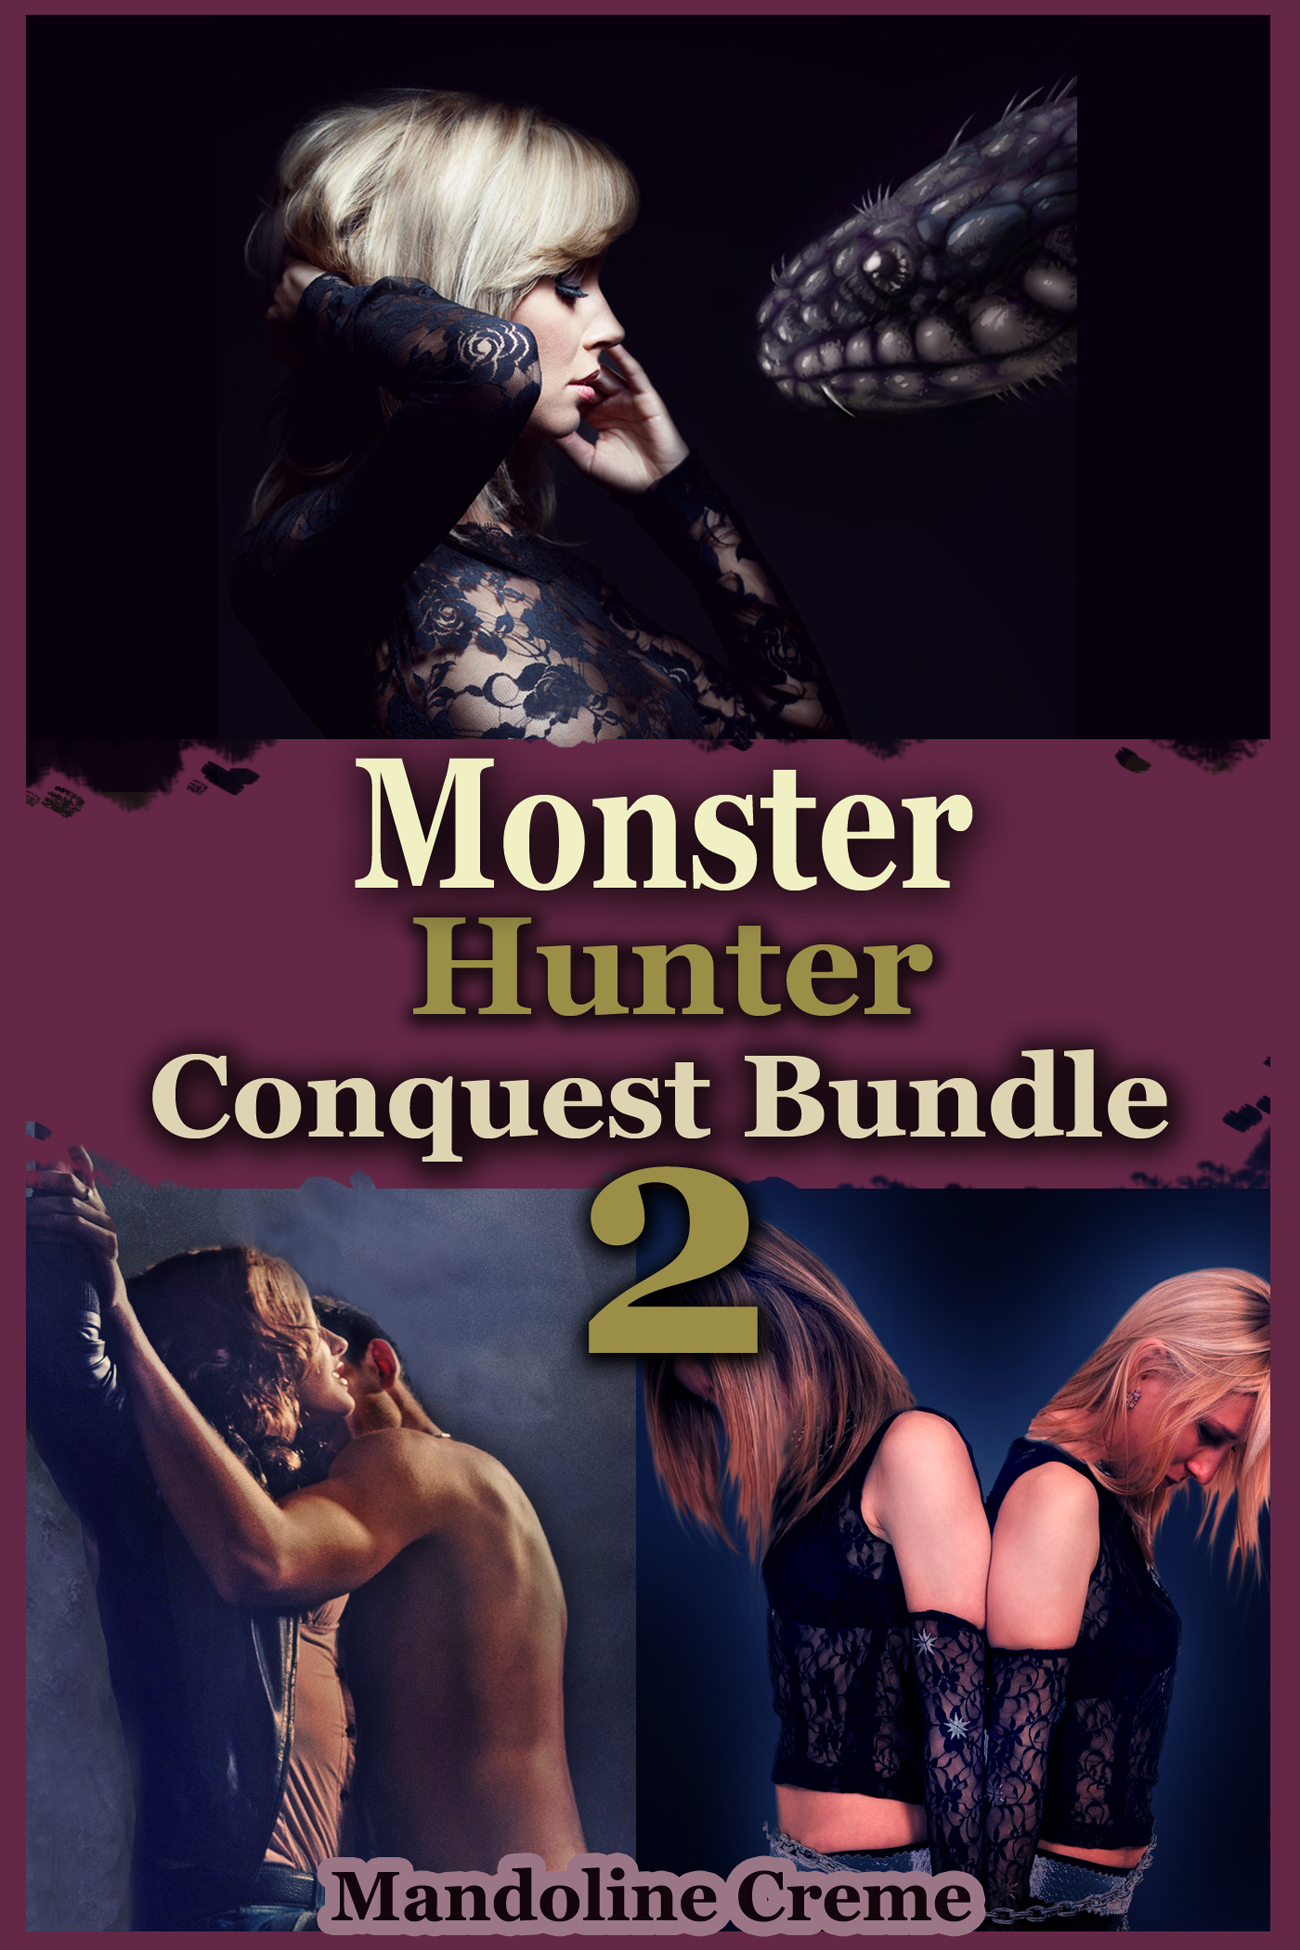 Monster Hunter Conquest Bundle #2